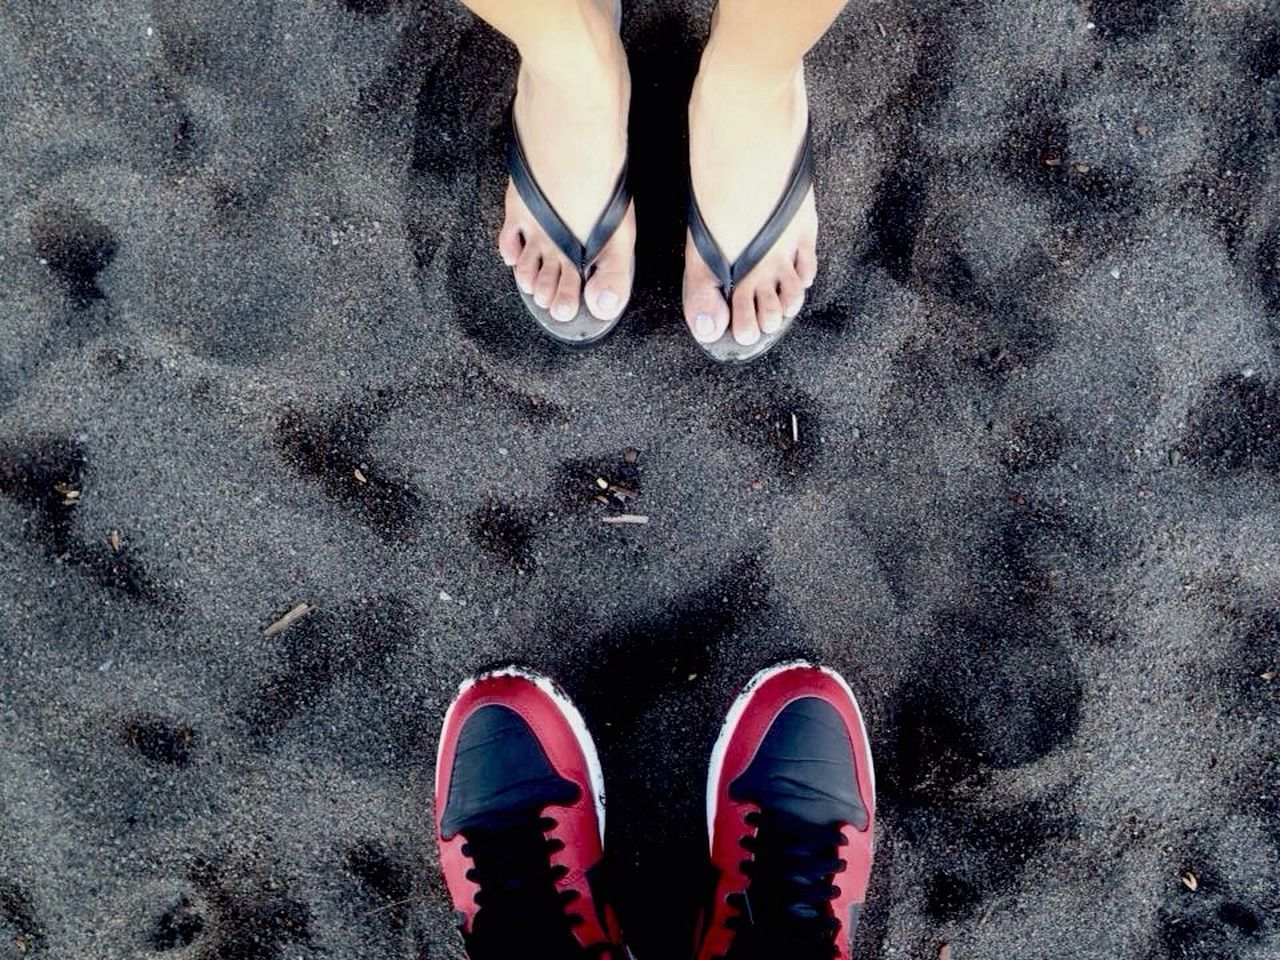 Touch down Camiguin Camiguin Philippines Philippines Touch Down Couple Couplegoals Couples Shoot Couple Photography Couple Walking Coupletravels Feets Feet On The Ground Feet In The Sand Feet And Shoes Shoes Eyeem Market EyeEm Gallery Eyeem Philippines Eyeem Photography Trip Travel Photography Travel Photos Travel Memories